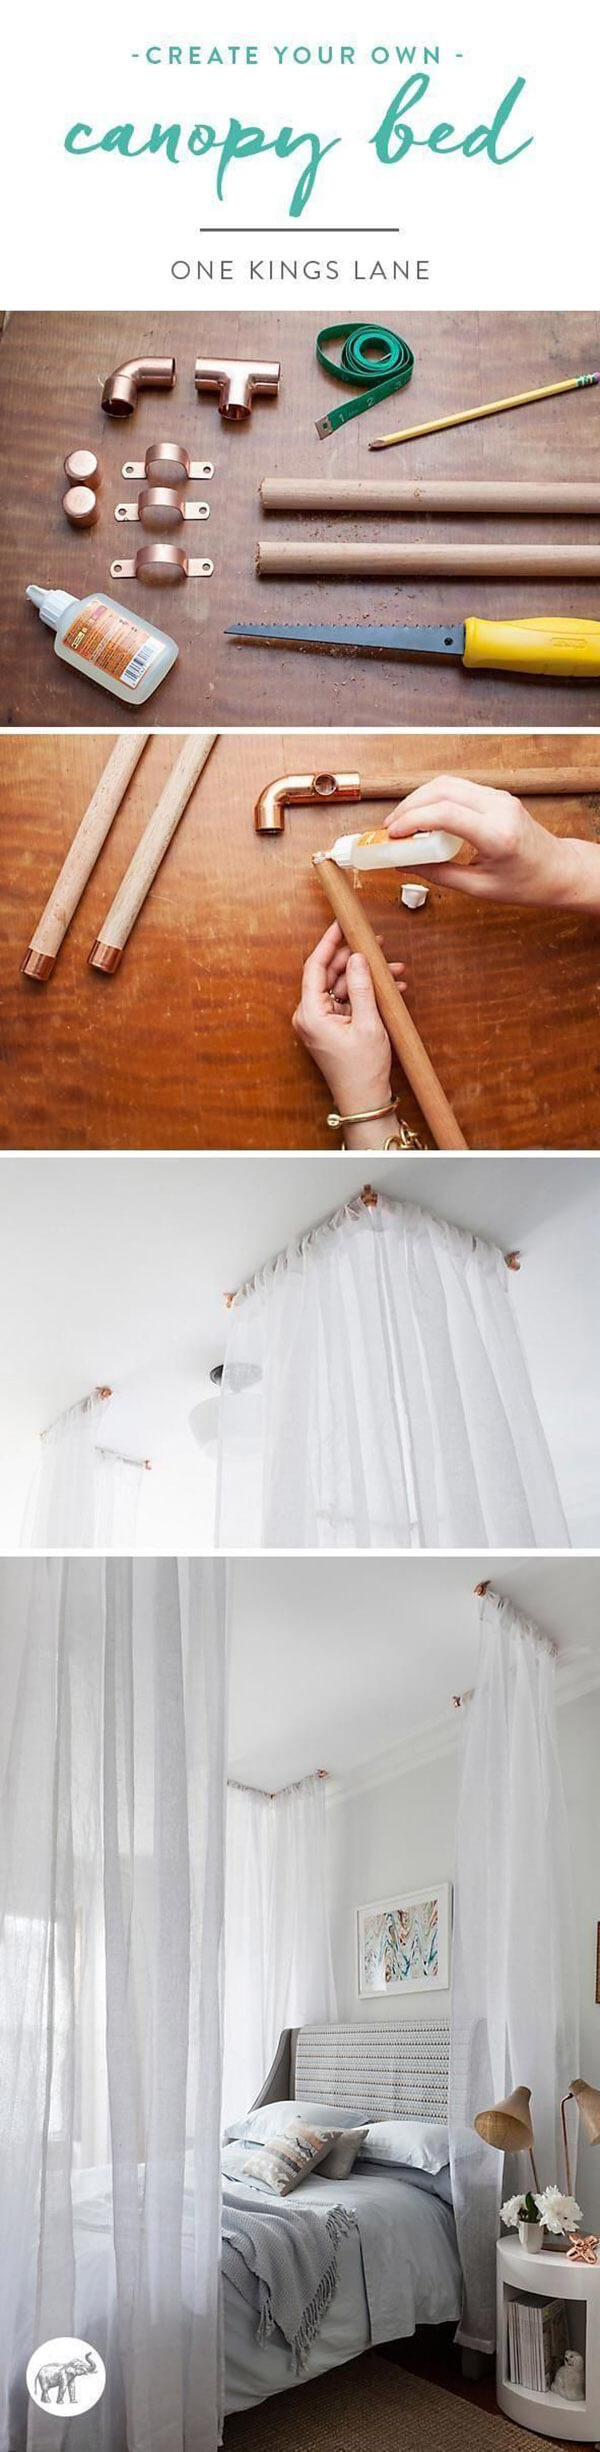 Sweet Low-Cost Canopy Bed Idea